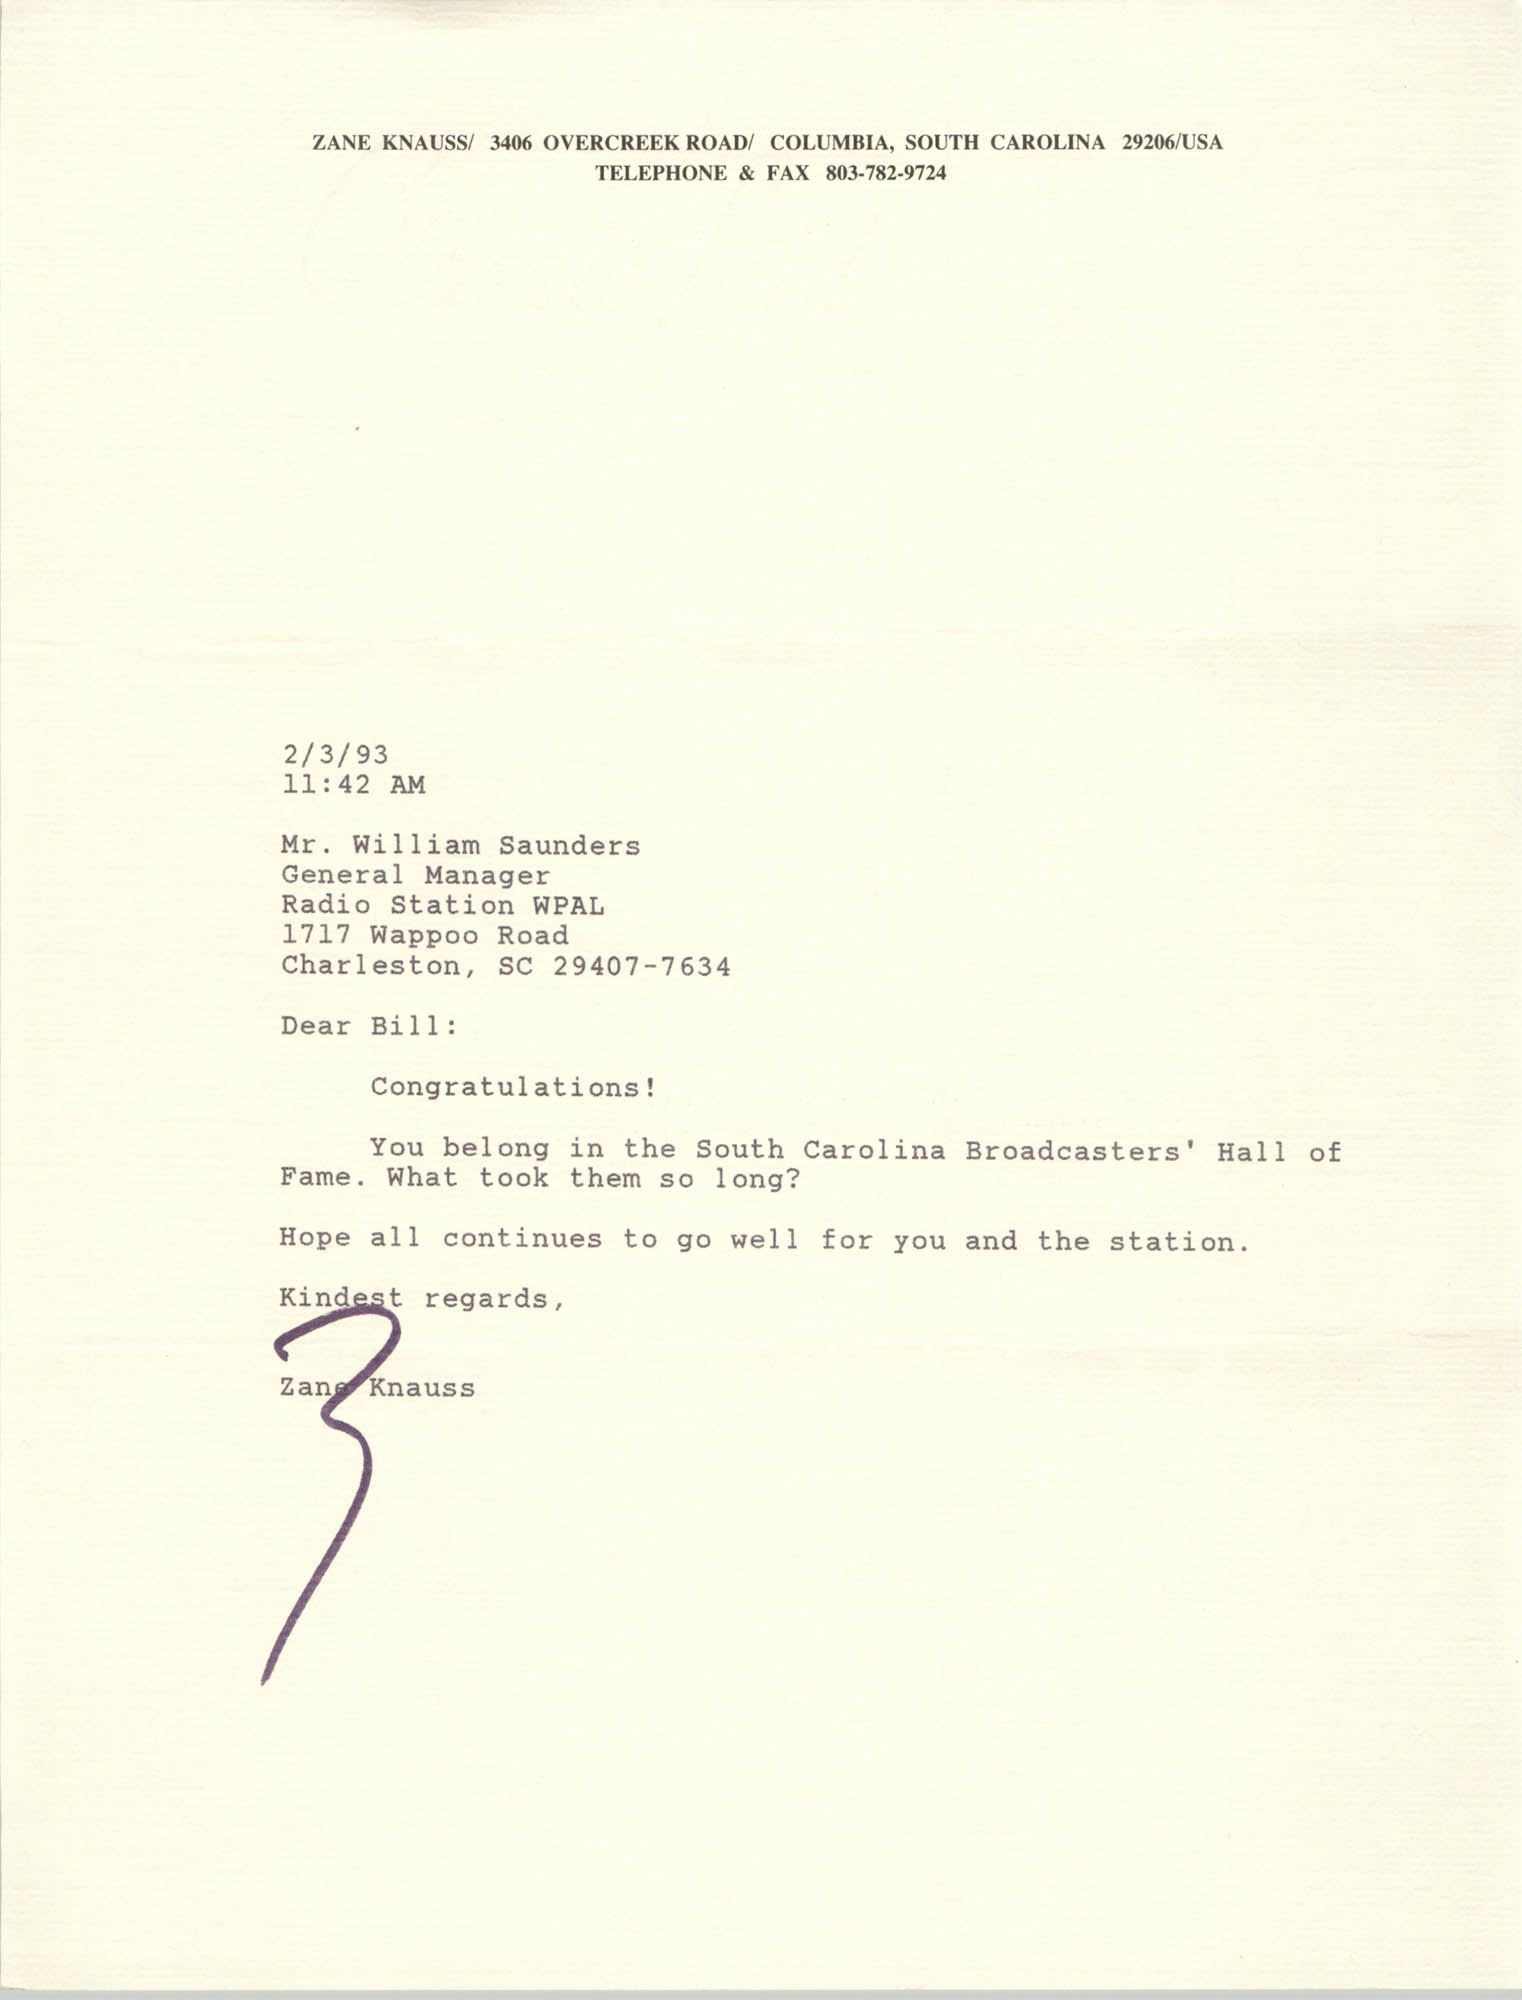 Letter from Zane Knauss to William Saunders, February 3, 1993